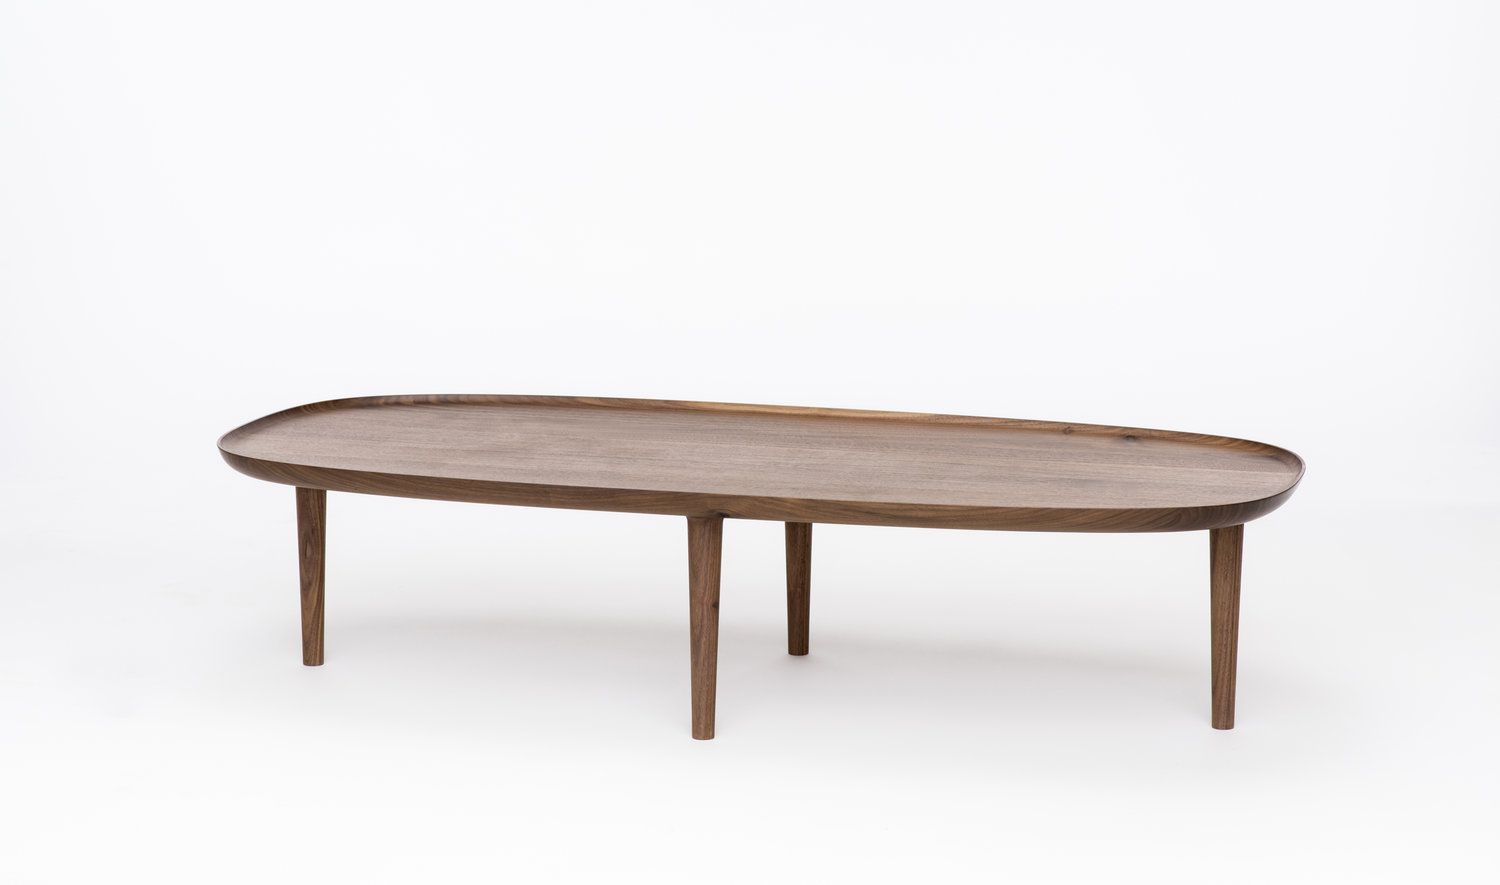 Awe Inspiring The Fiori Coffee Table Poiat Table Contemporary Download Free Architecture Designs Scobabritishbridgeorg